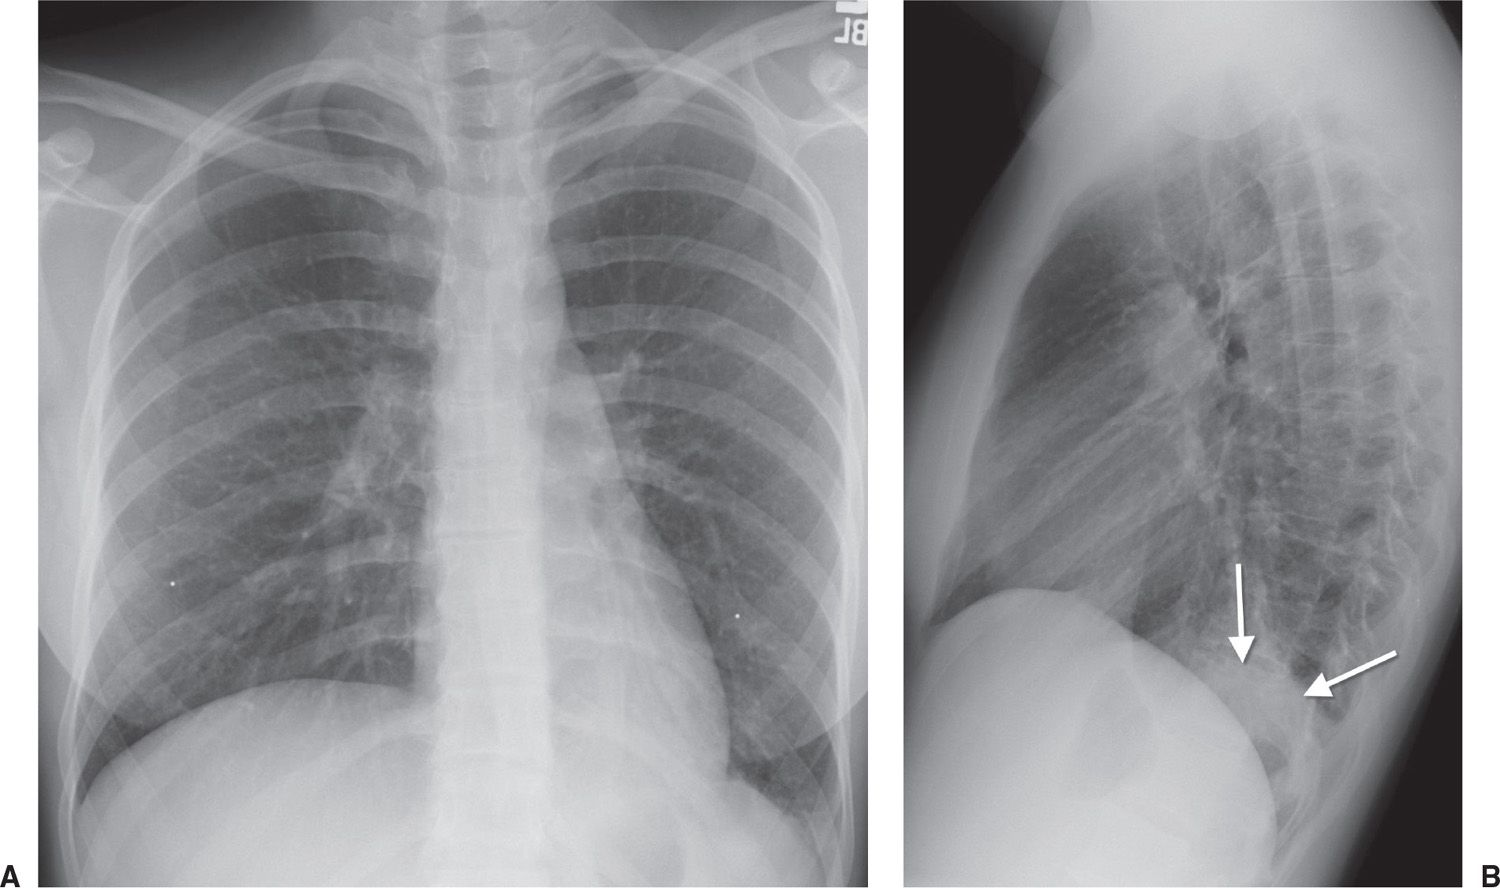 A PA chest radiograph of a patient with left lower lobe pneumonia shows abnormal opacity obscuring the left hemidiaphragm (silhouette sign). & Signs and Patterns of Lung Disease | Radiology Key